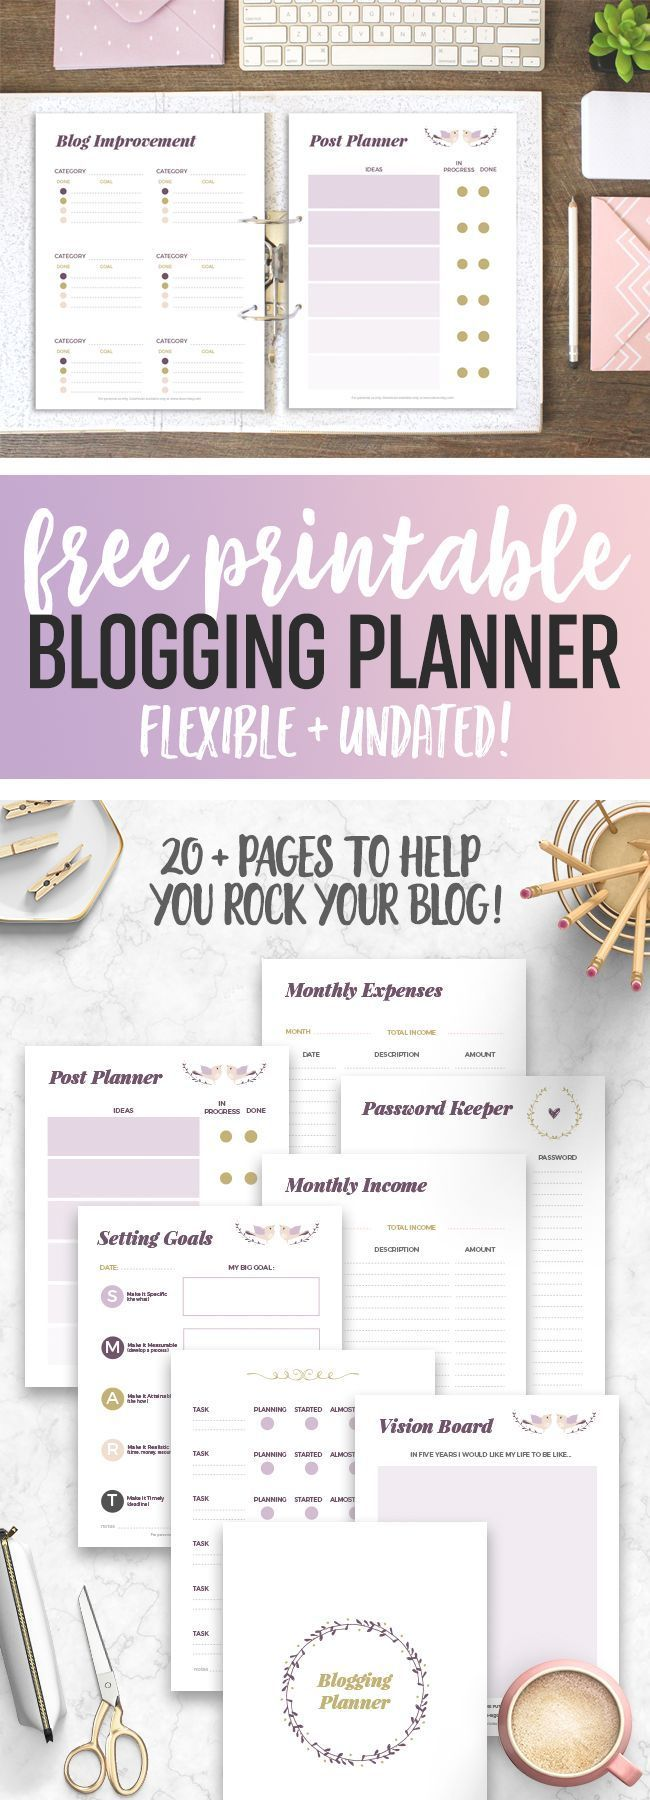 Our free printable blogging planner will help bloggers get their businesses organized and their blog goals on track for this year and beyond!